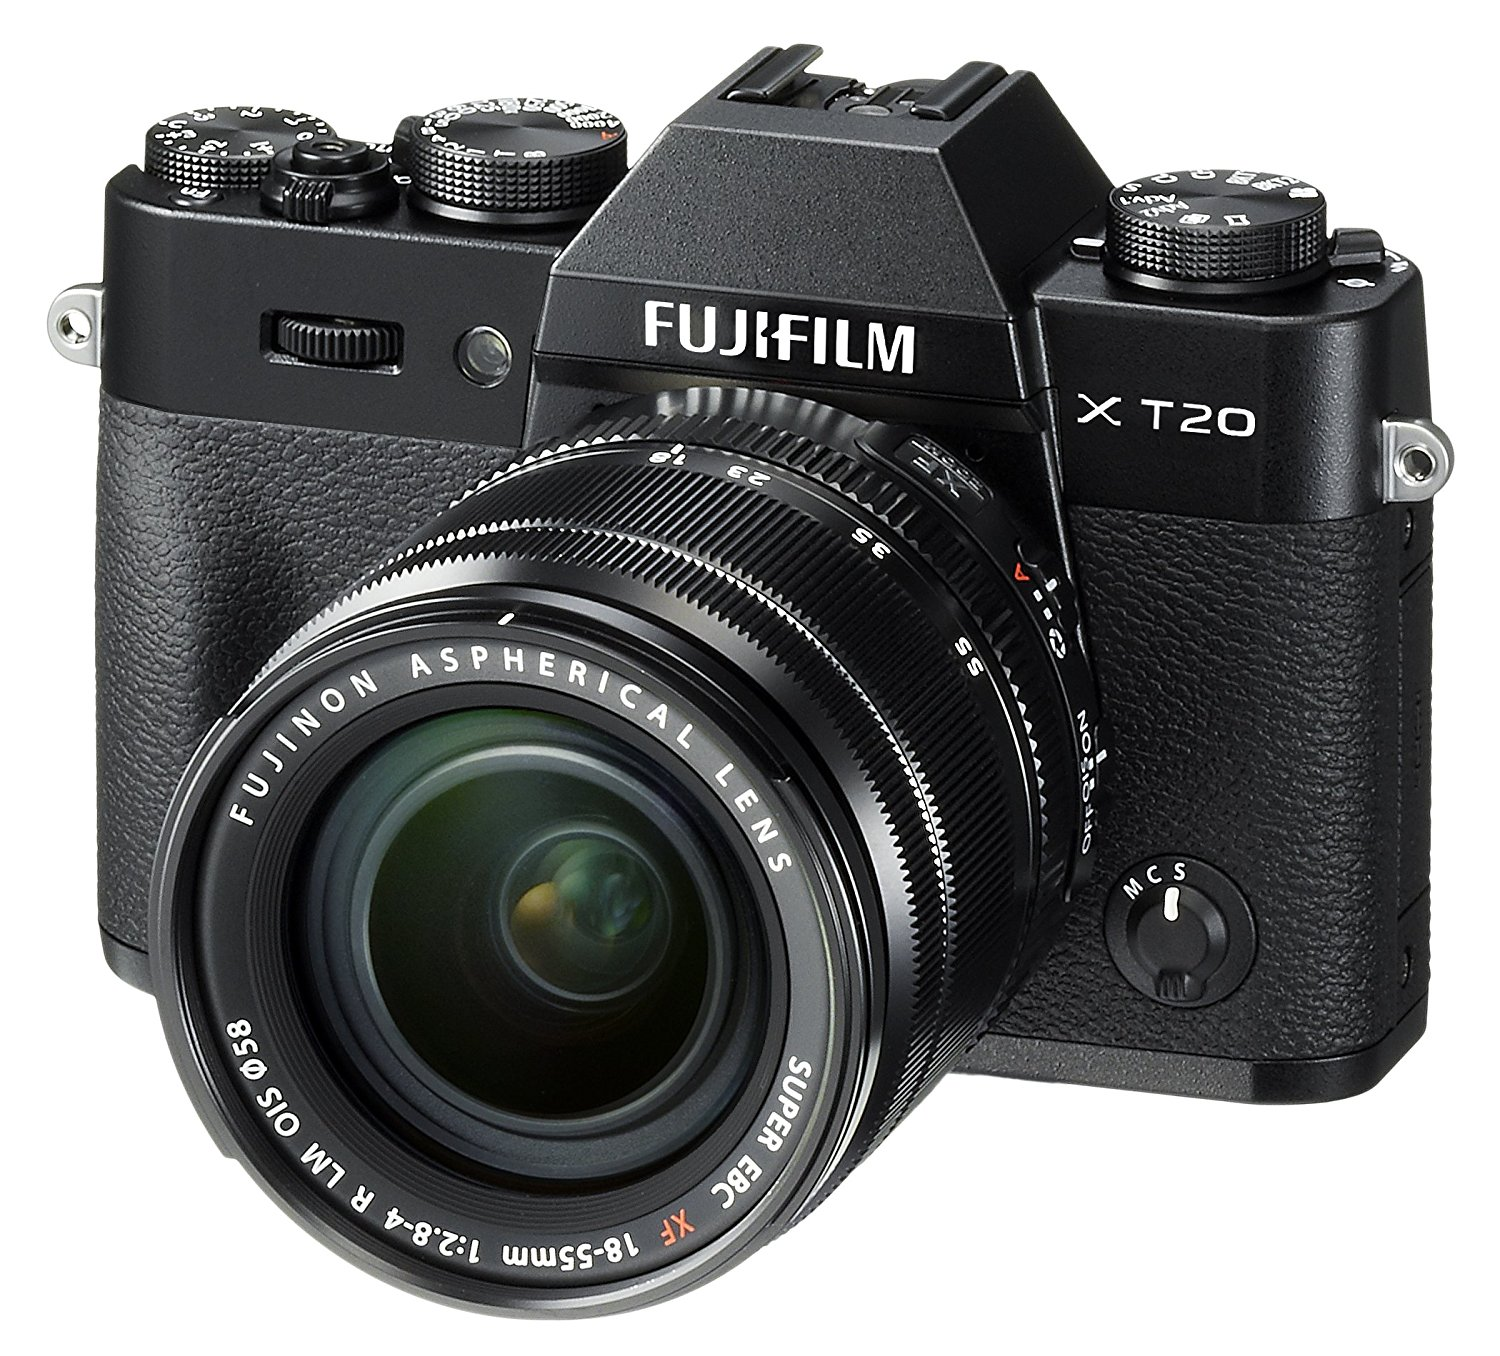 <span style='color:#dd3333;'>Hot Deal: $50 Off on Fujifilm X-T20 & $500 Off on Fujifilm X-T1</span>